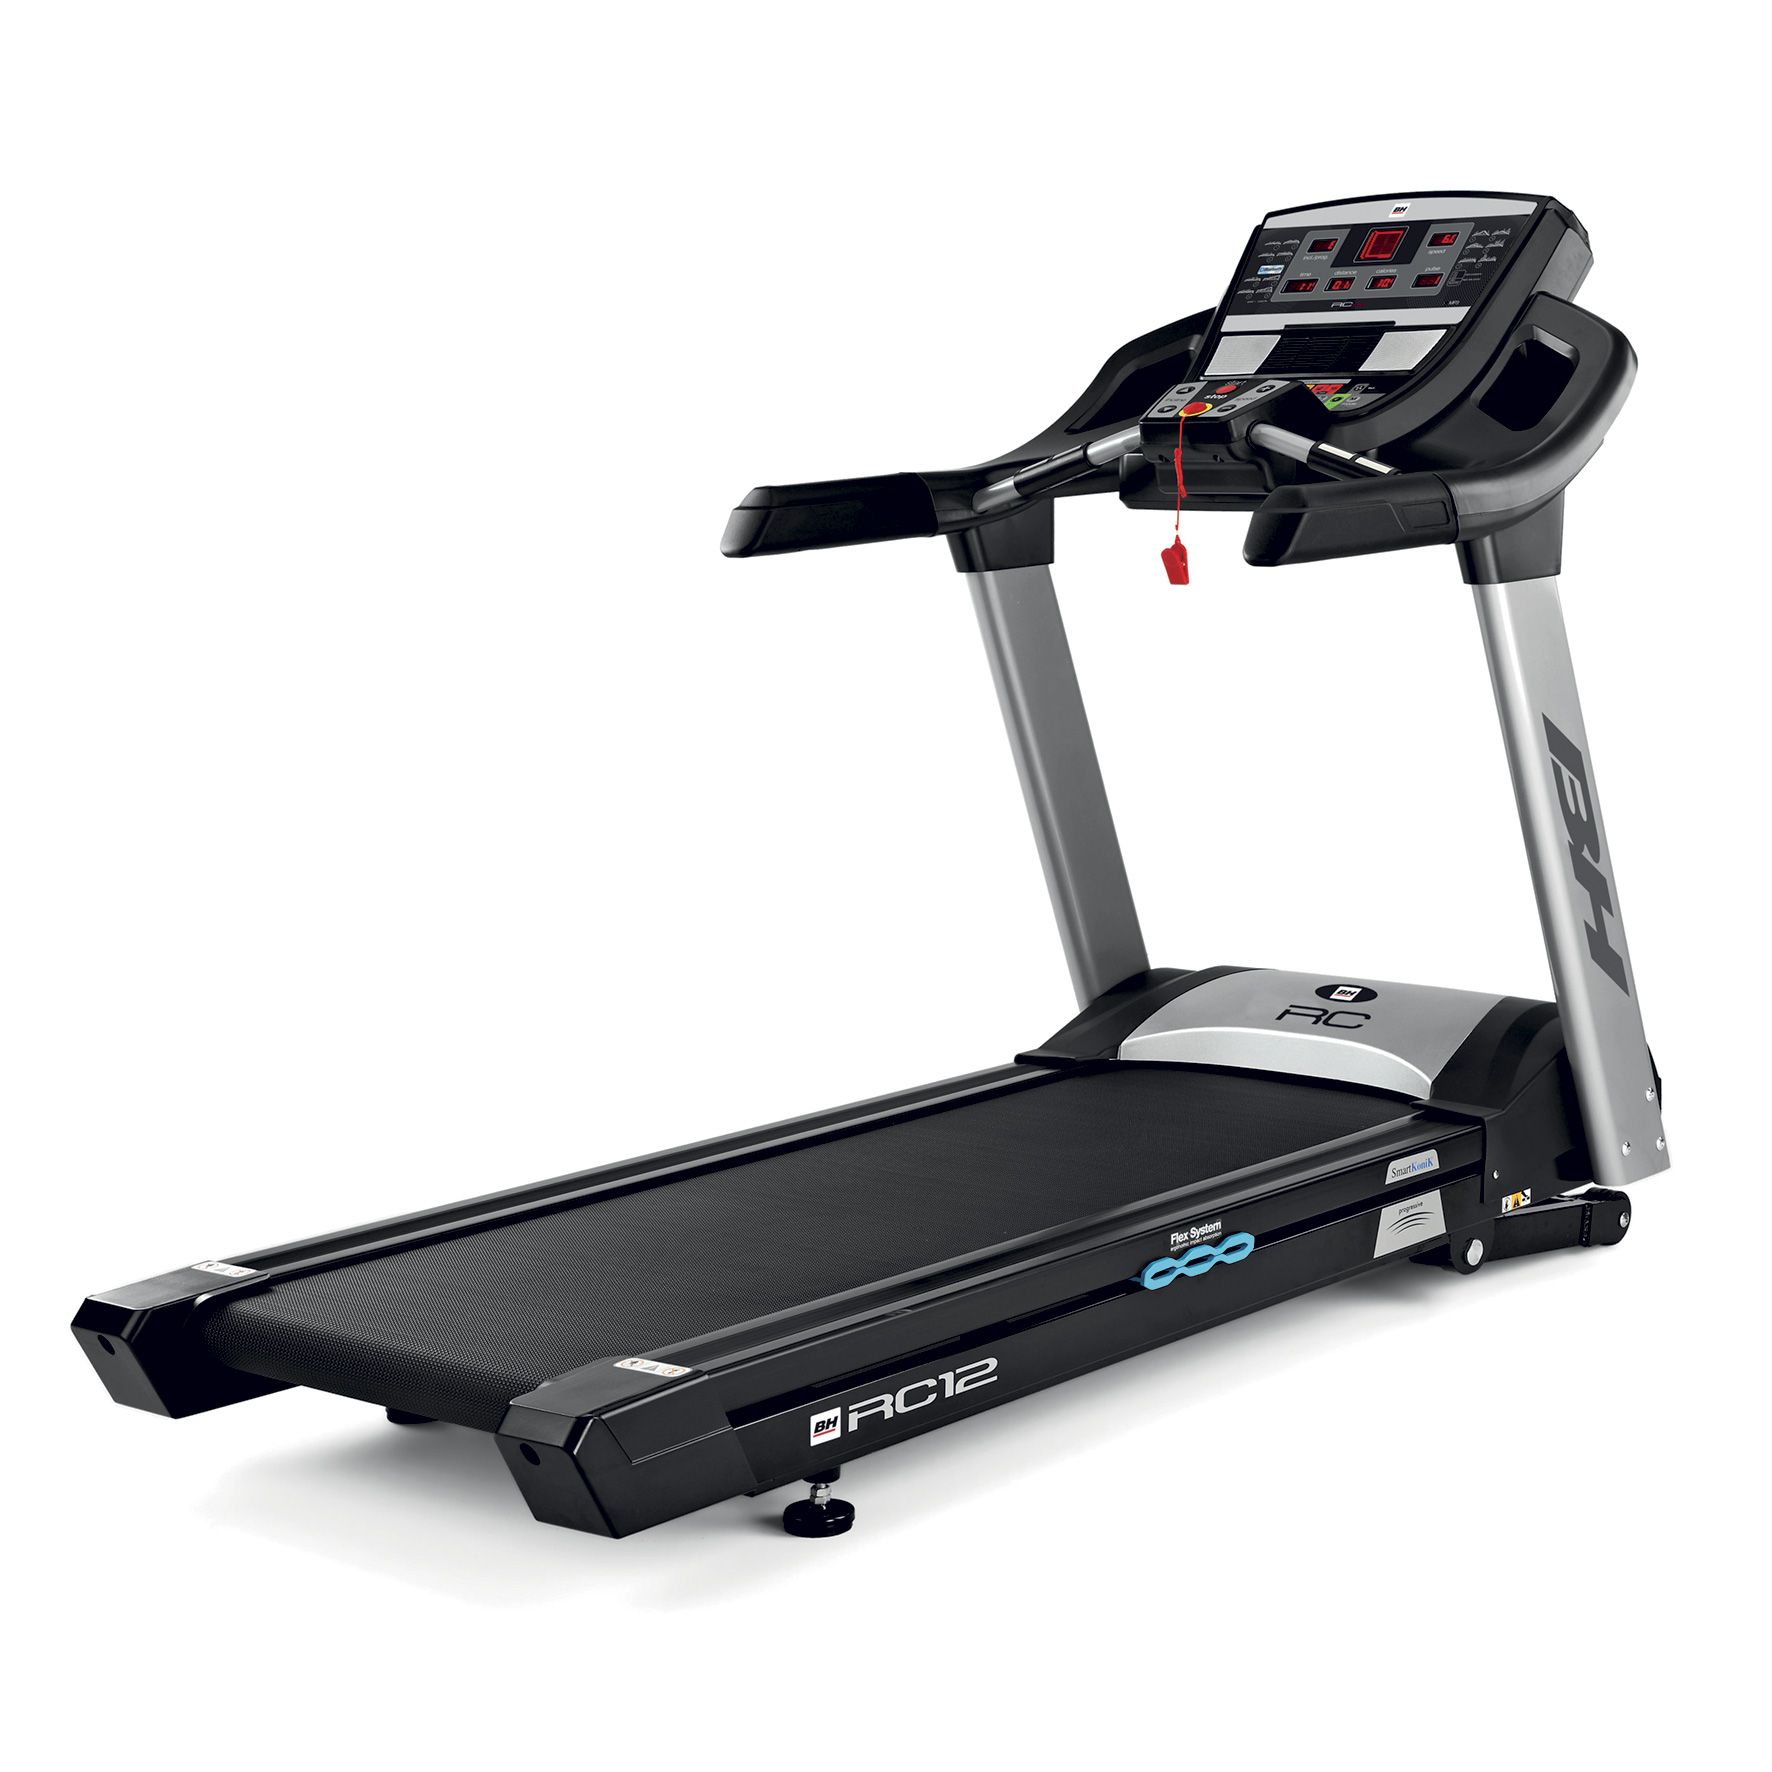 BH FITNESS i.RC12 (G6182I)